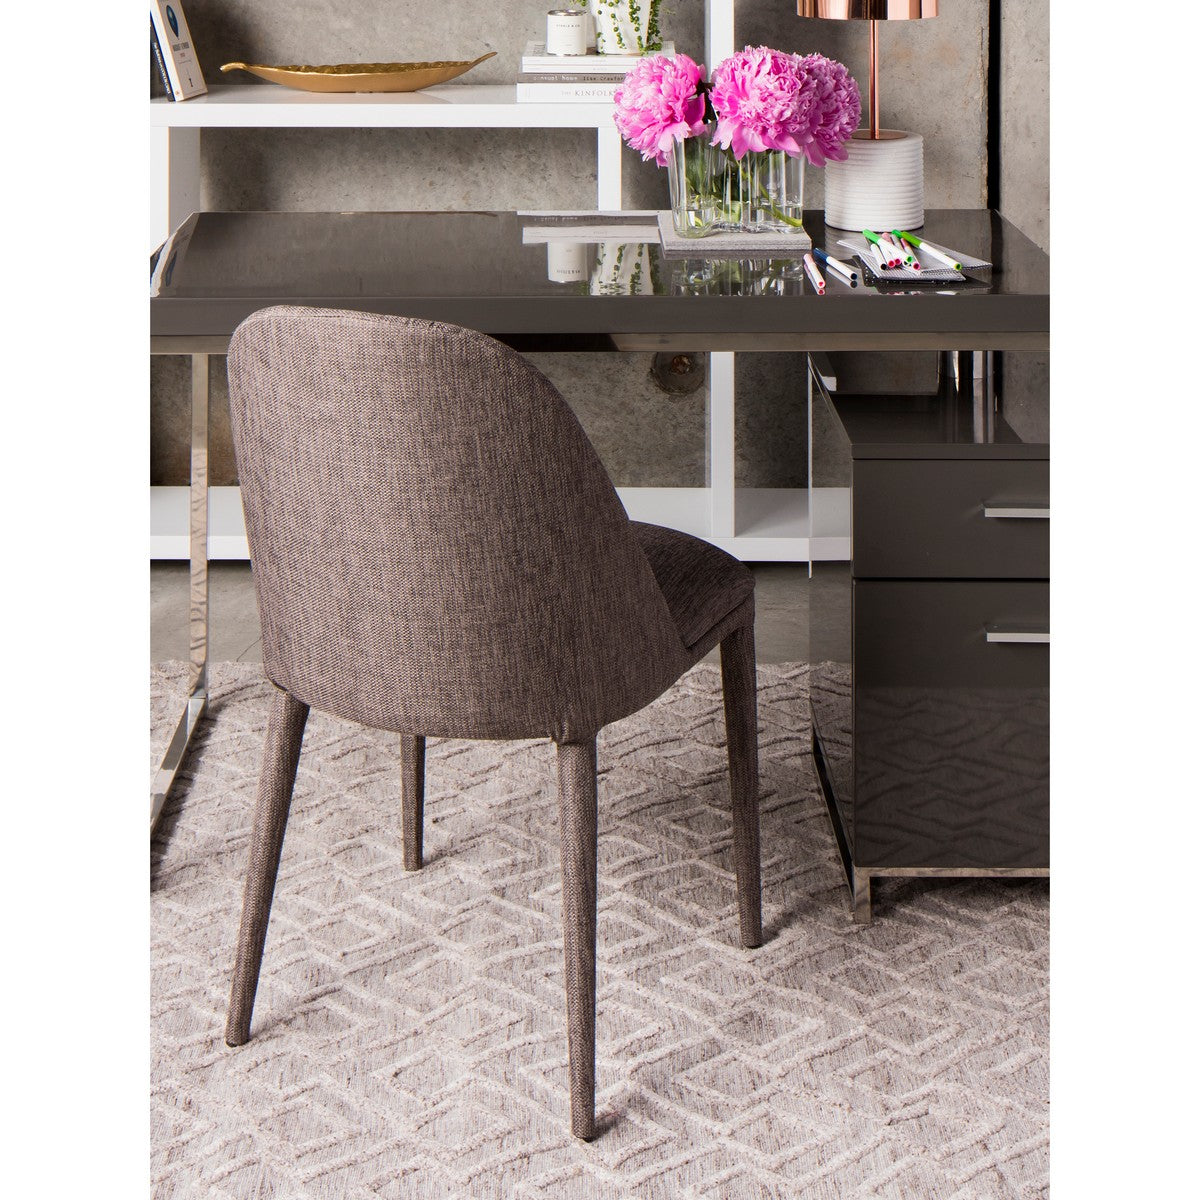 Moe's Home Collection Libby Dining Chair Grey-Set of Two - EH-1100-45 - Moe's Home Collection - Dining Chairs - Minimal And Modern - 1